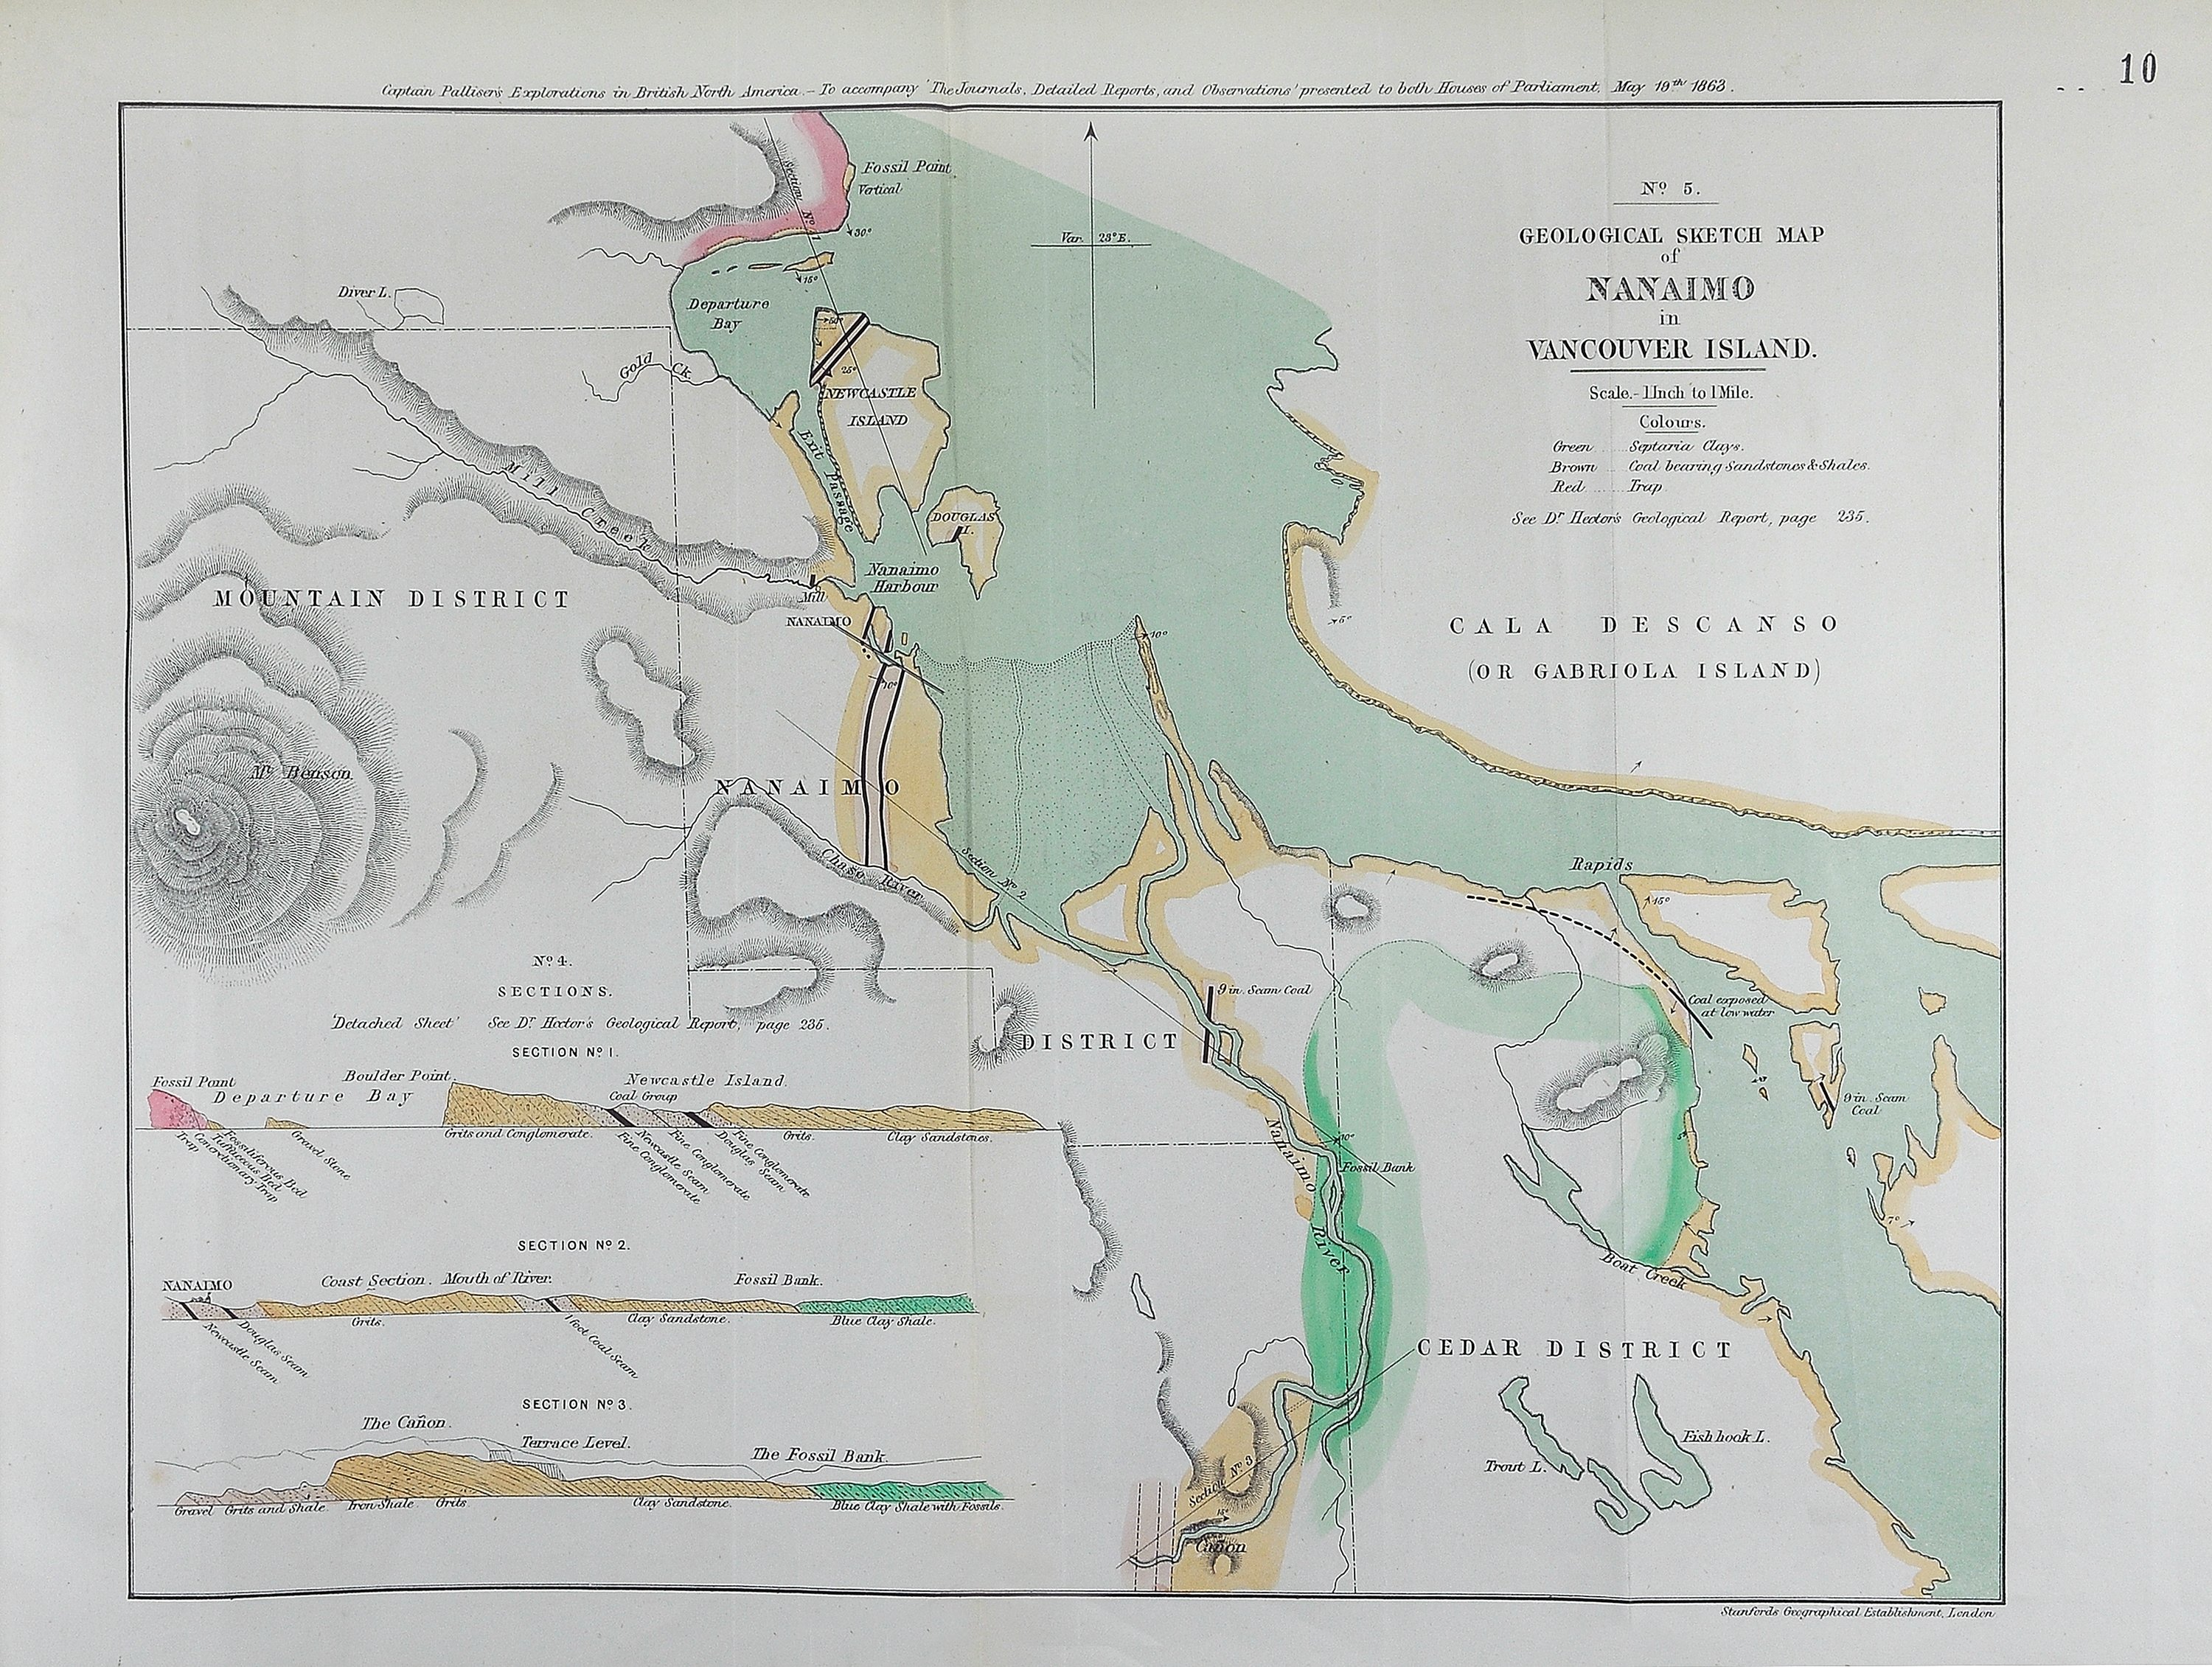 Geological sketch map of Nanaimo in Vancouver Island.